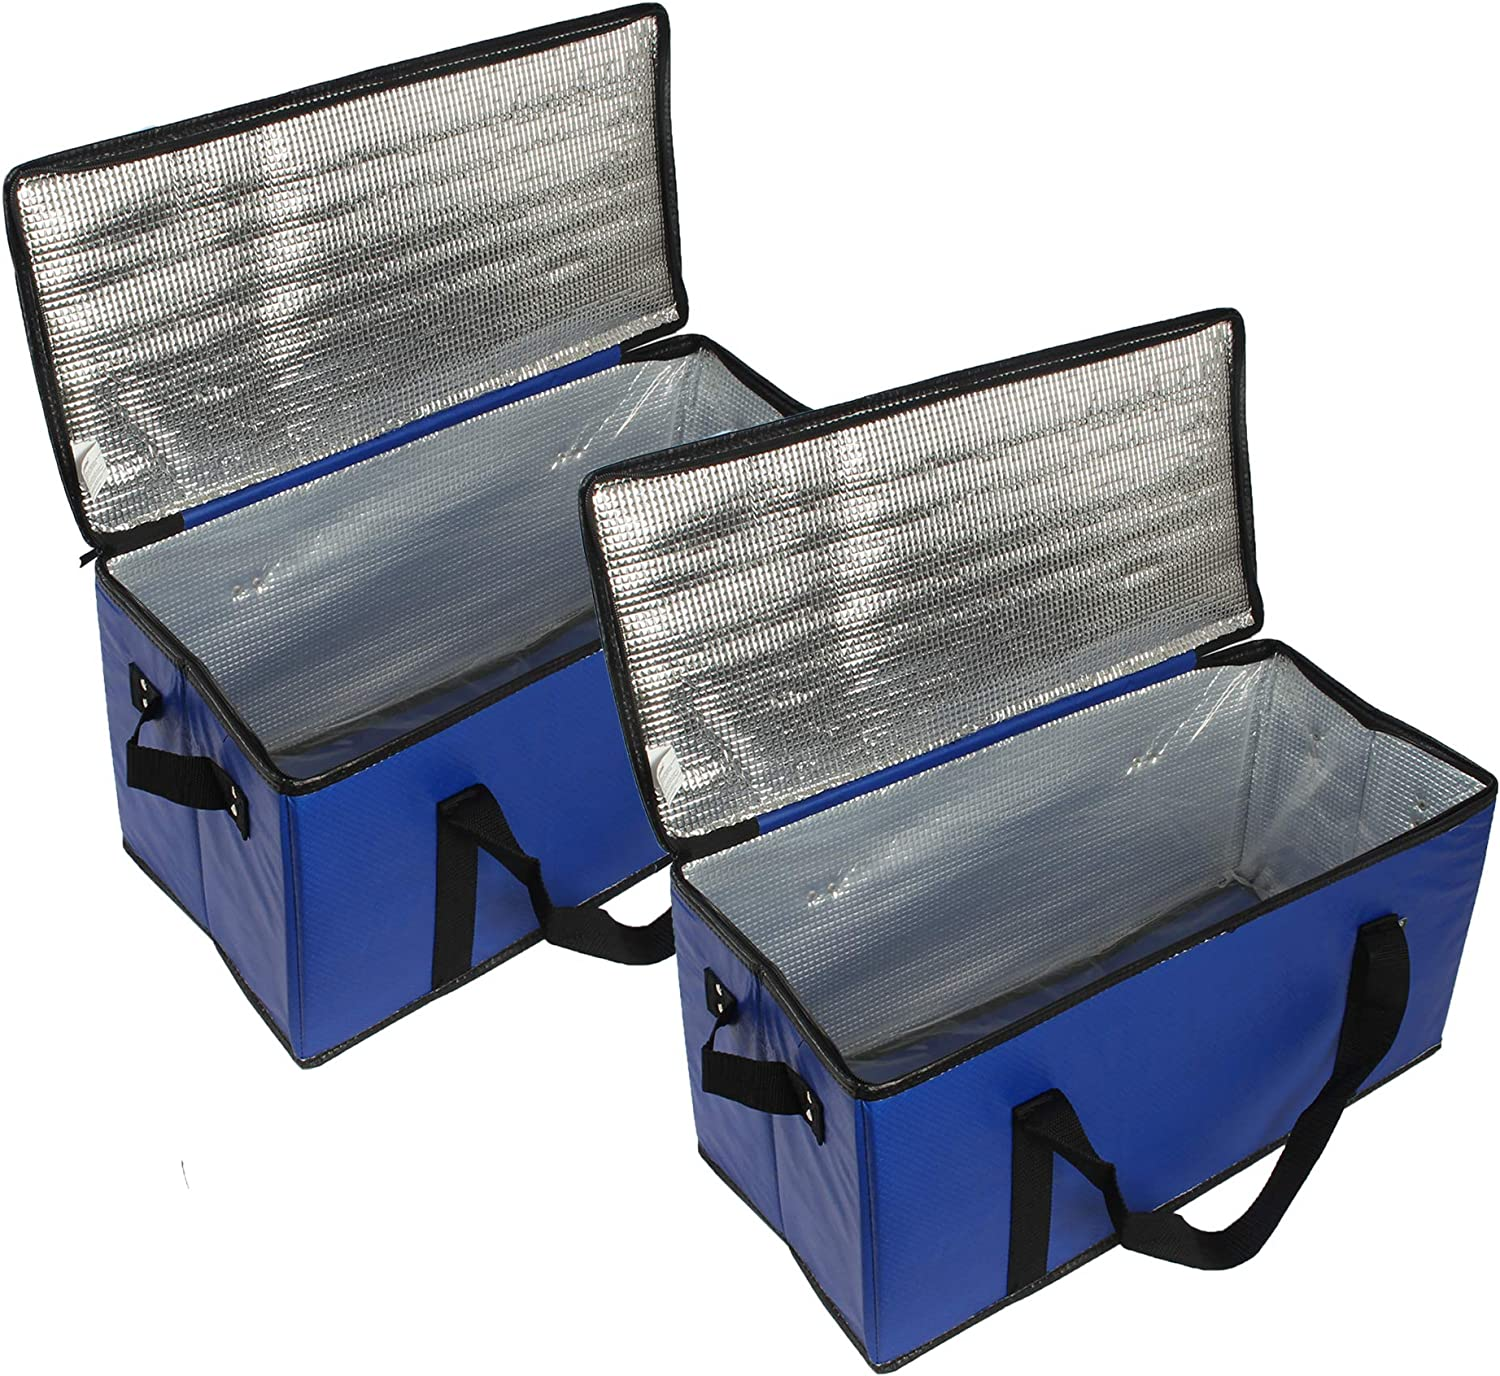 Earthwise Insulated Food Delivery Grocery Bag Carrier (Set of 2) Collapsible Extra Large Waterproof Reusable Shopping Tote Zipper Top Lid for Hot or Cold Food Reinforced Bottom Panel (Royal Blue)